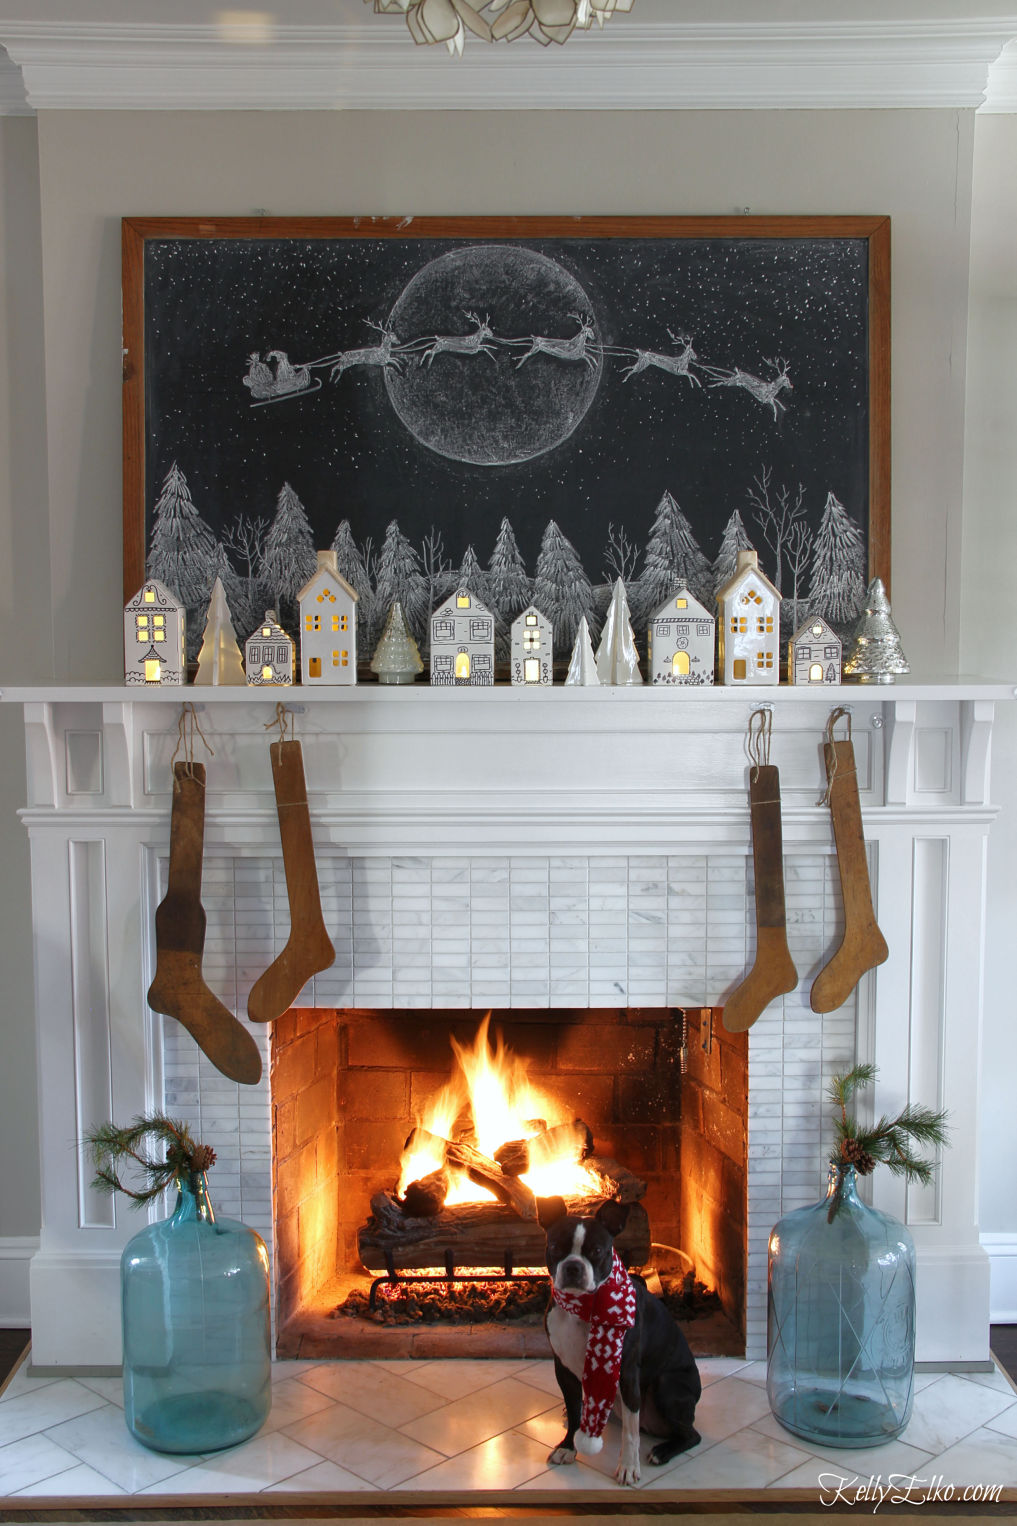 Love this chalkboard Christmas mantel with Santa in his sleigh, little white ceramic houses and antique stocking stretchers kellyelko.com #christmas #christmasmantel #farmhousechristmas #christmaschalkboard #chalkboardart #christmasdecorating #christmashometour #vintagechristmas